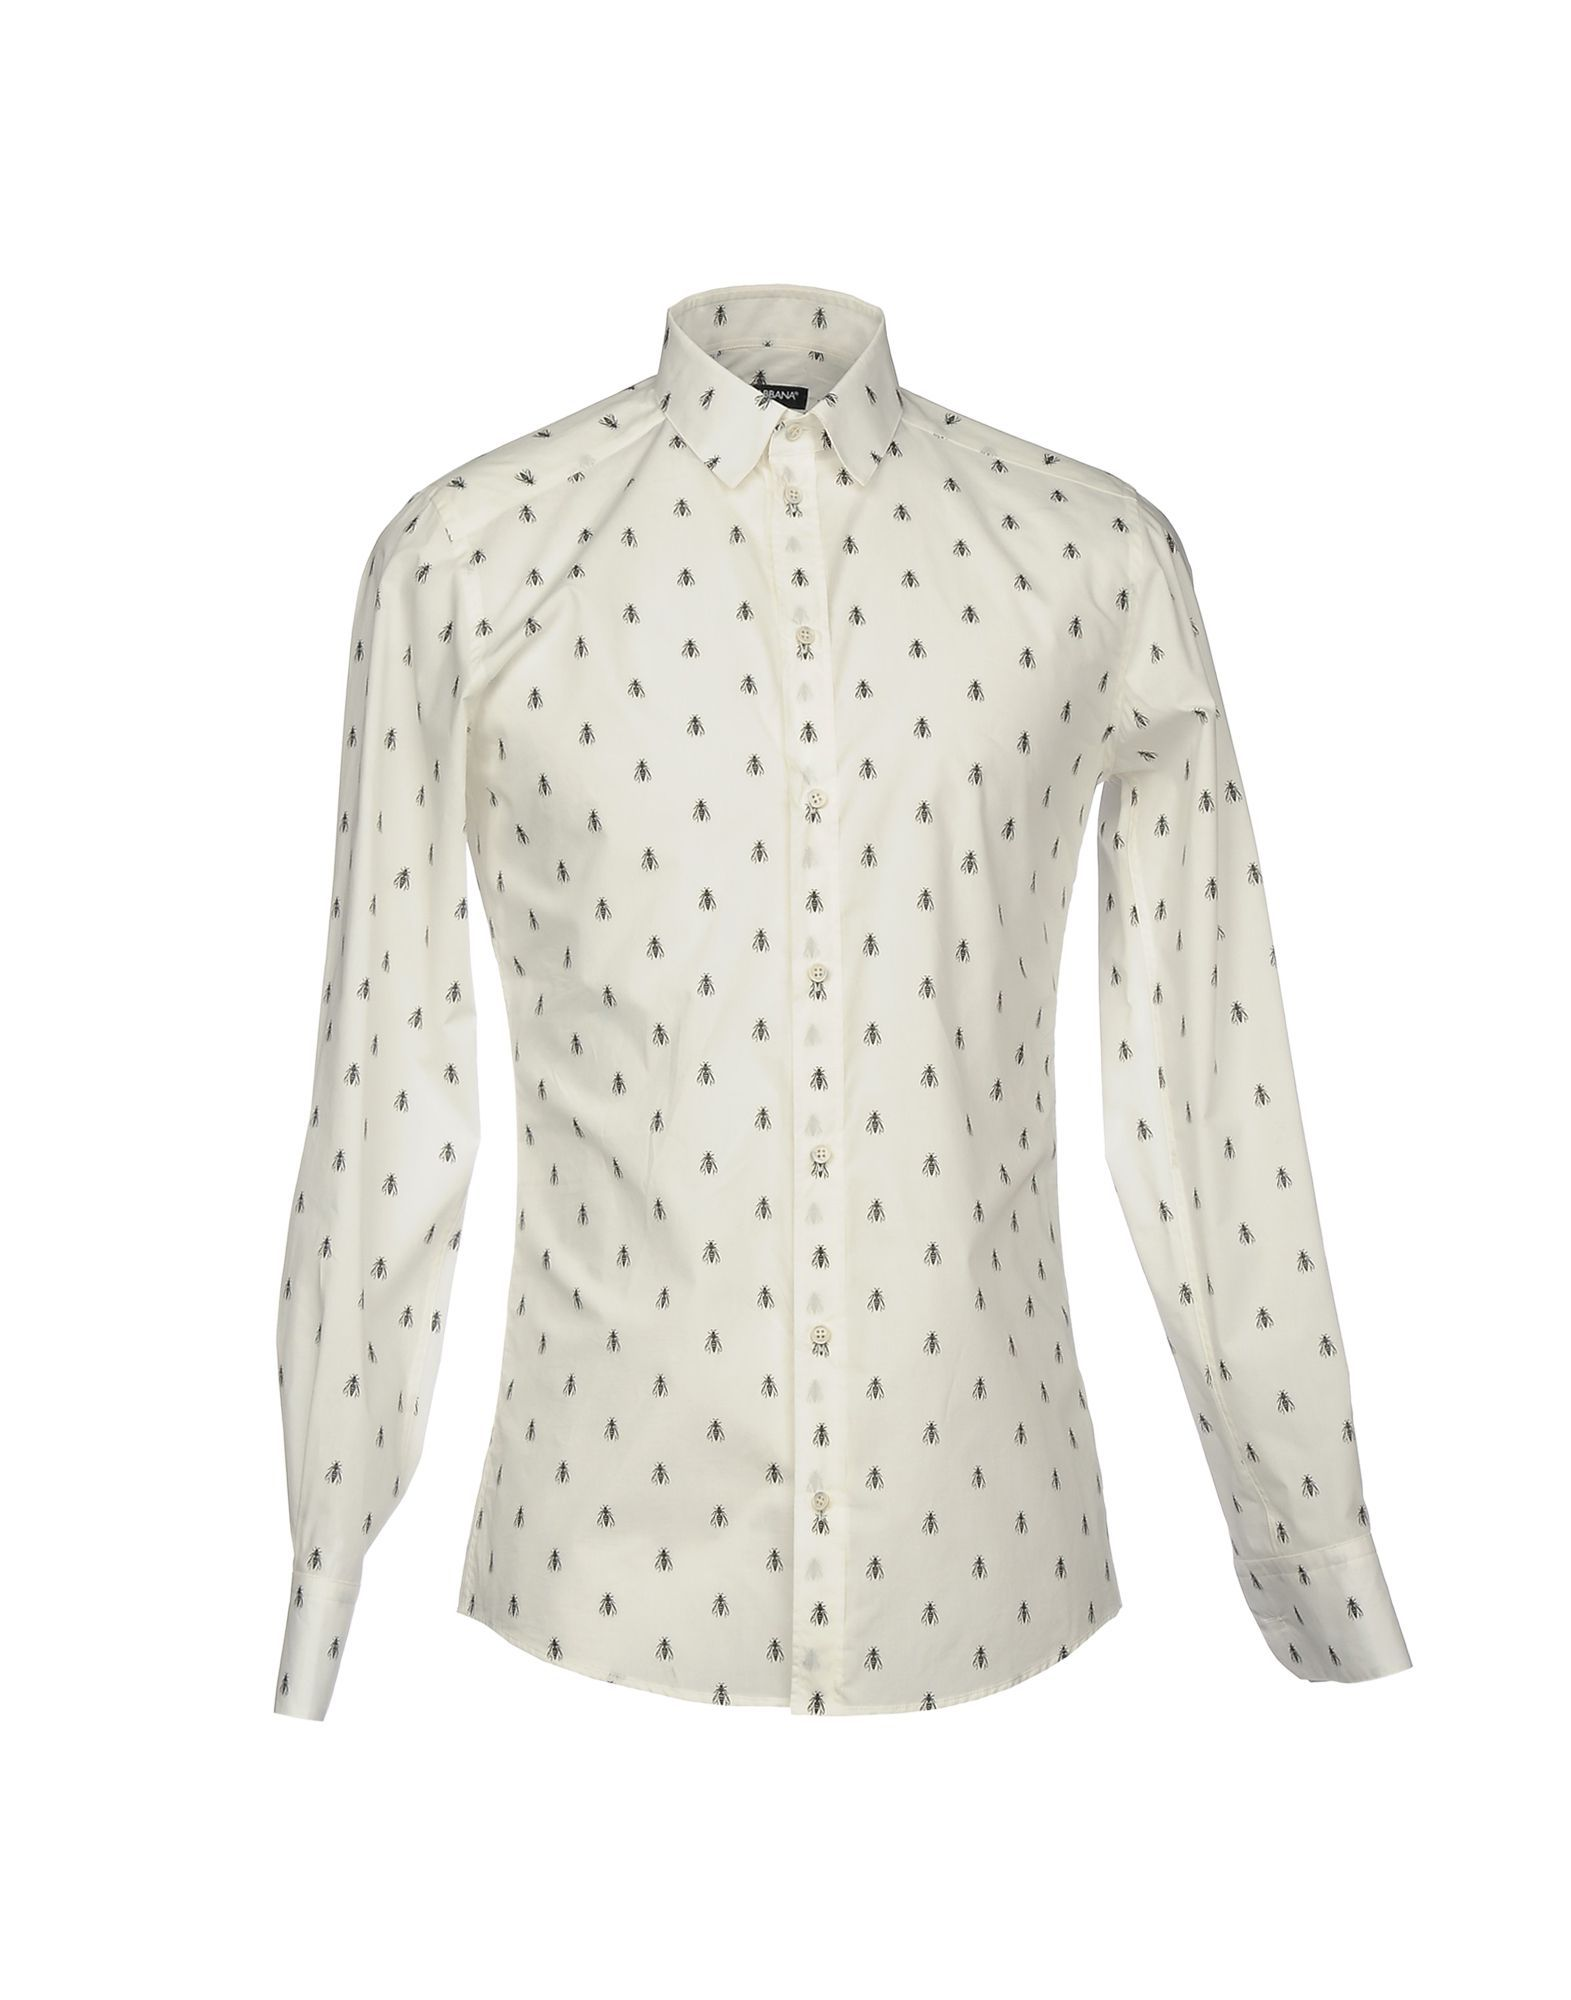 Dolce & Gabbana Ivory Cotton Shirt